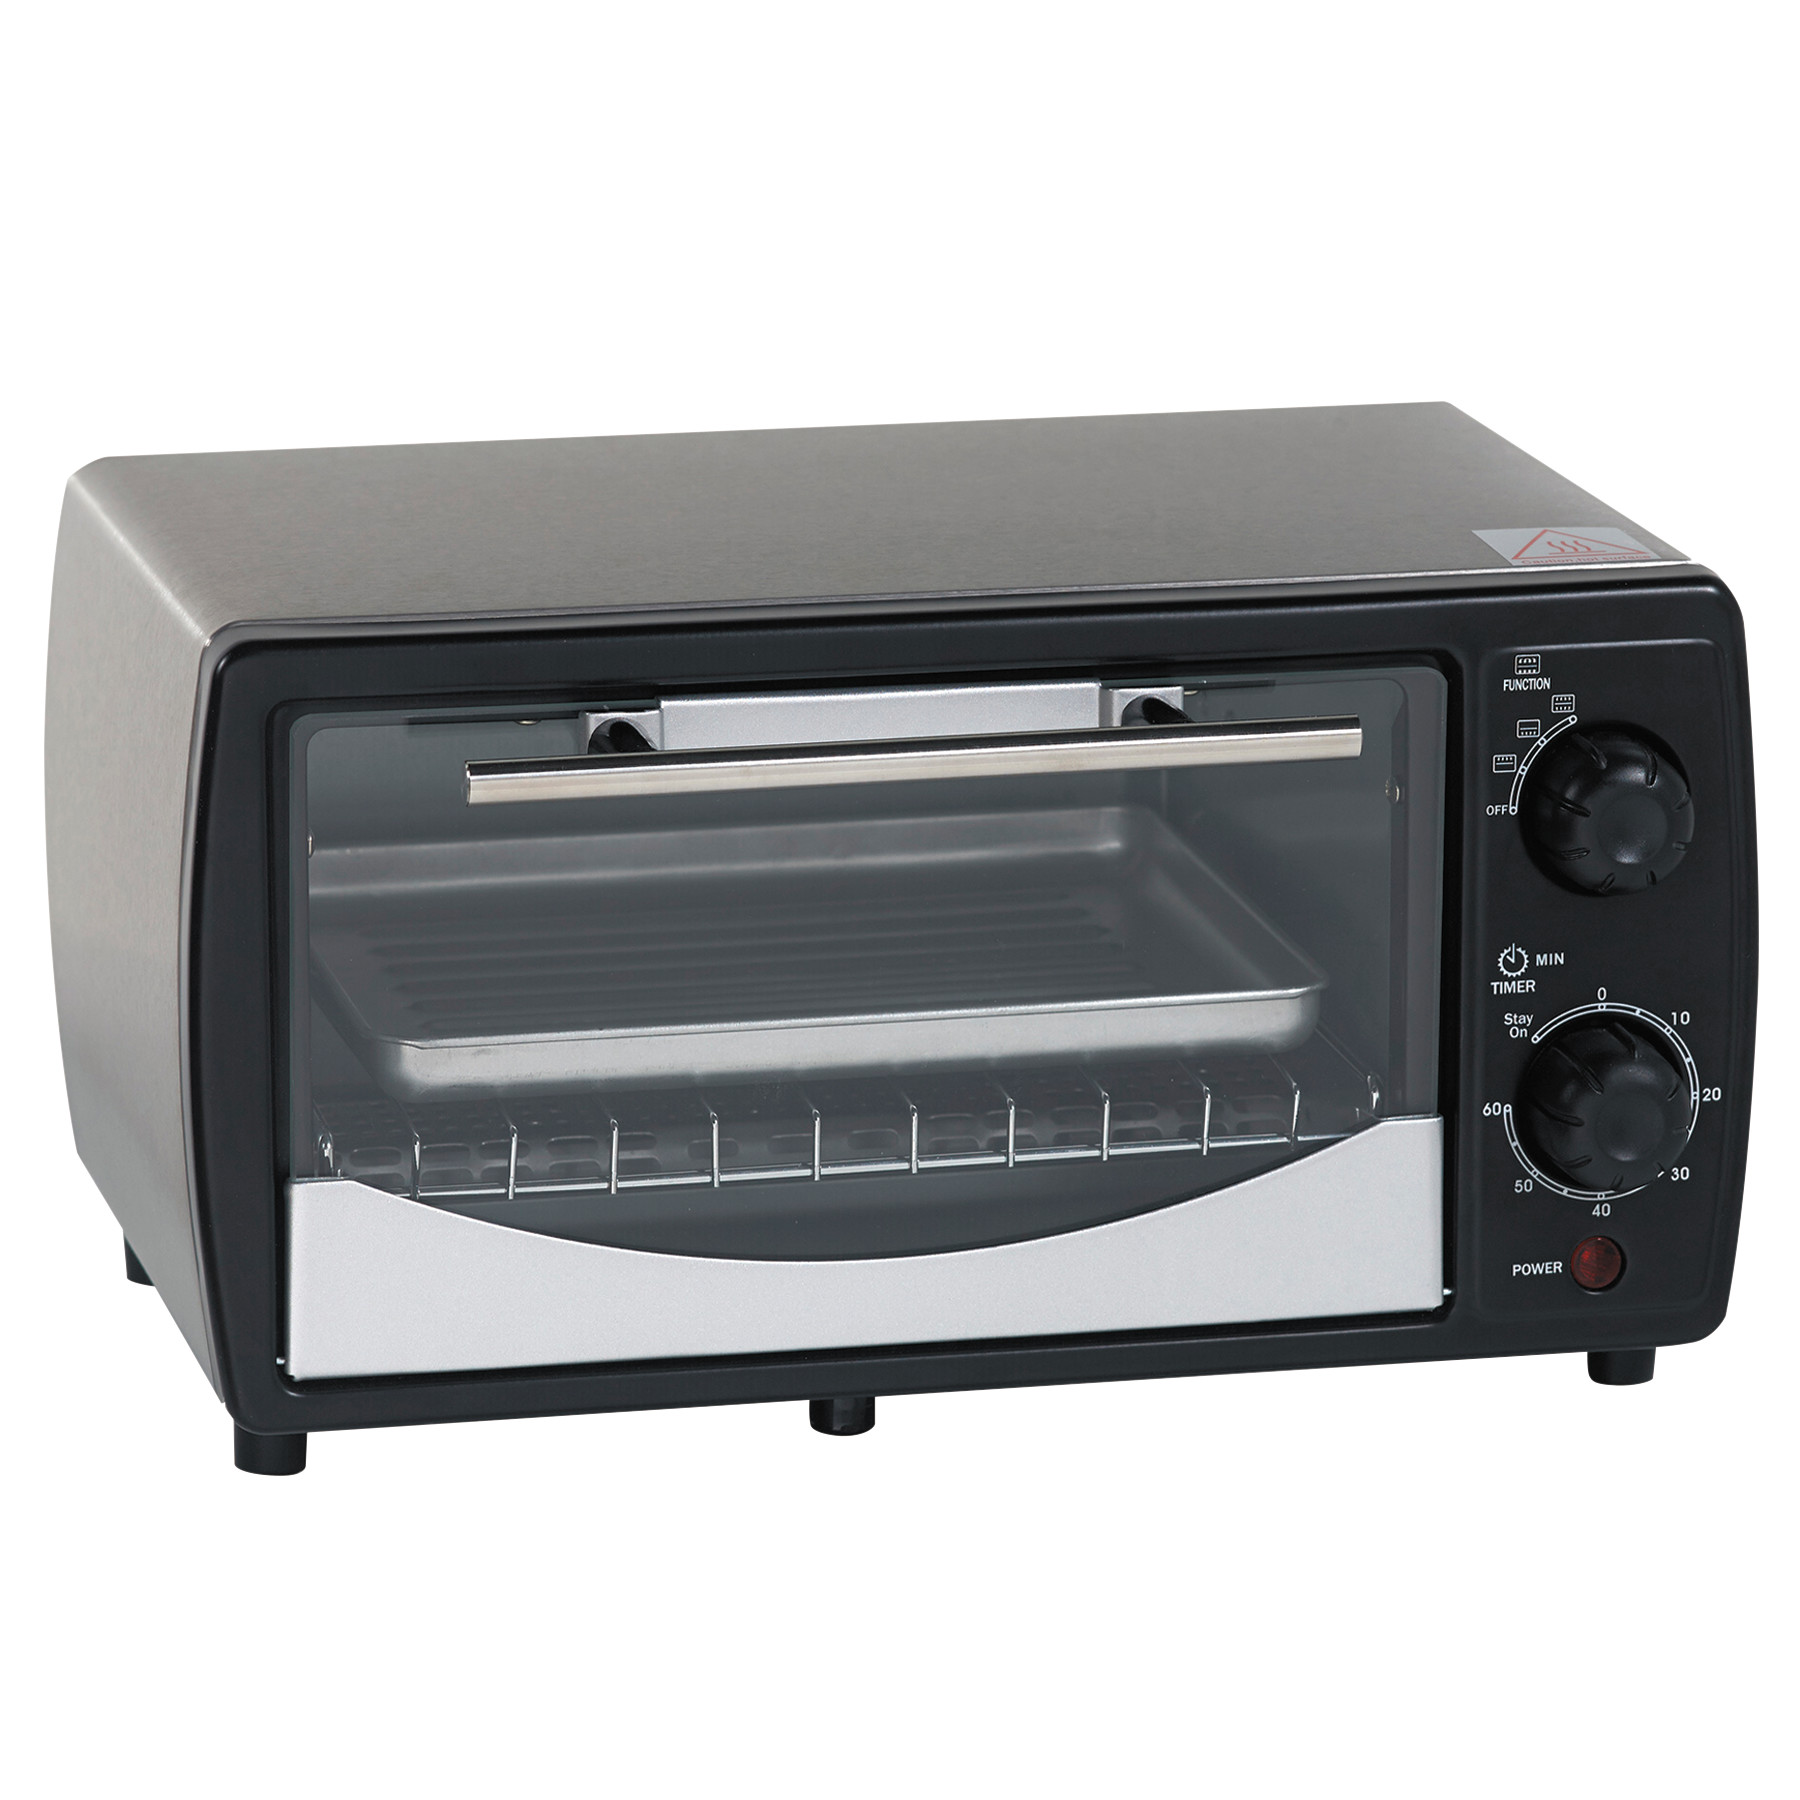 Avanti Toaster Oven, 0.32 cu ft Capacity, Stainless Steel Black, 14 1 2 x 11 1 2 x 8 by Avanti